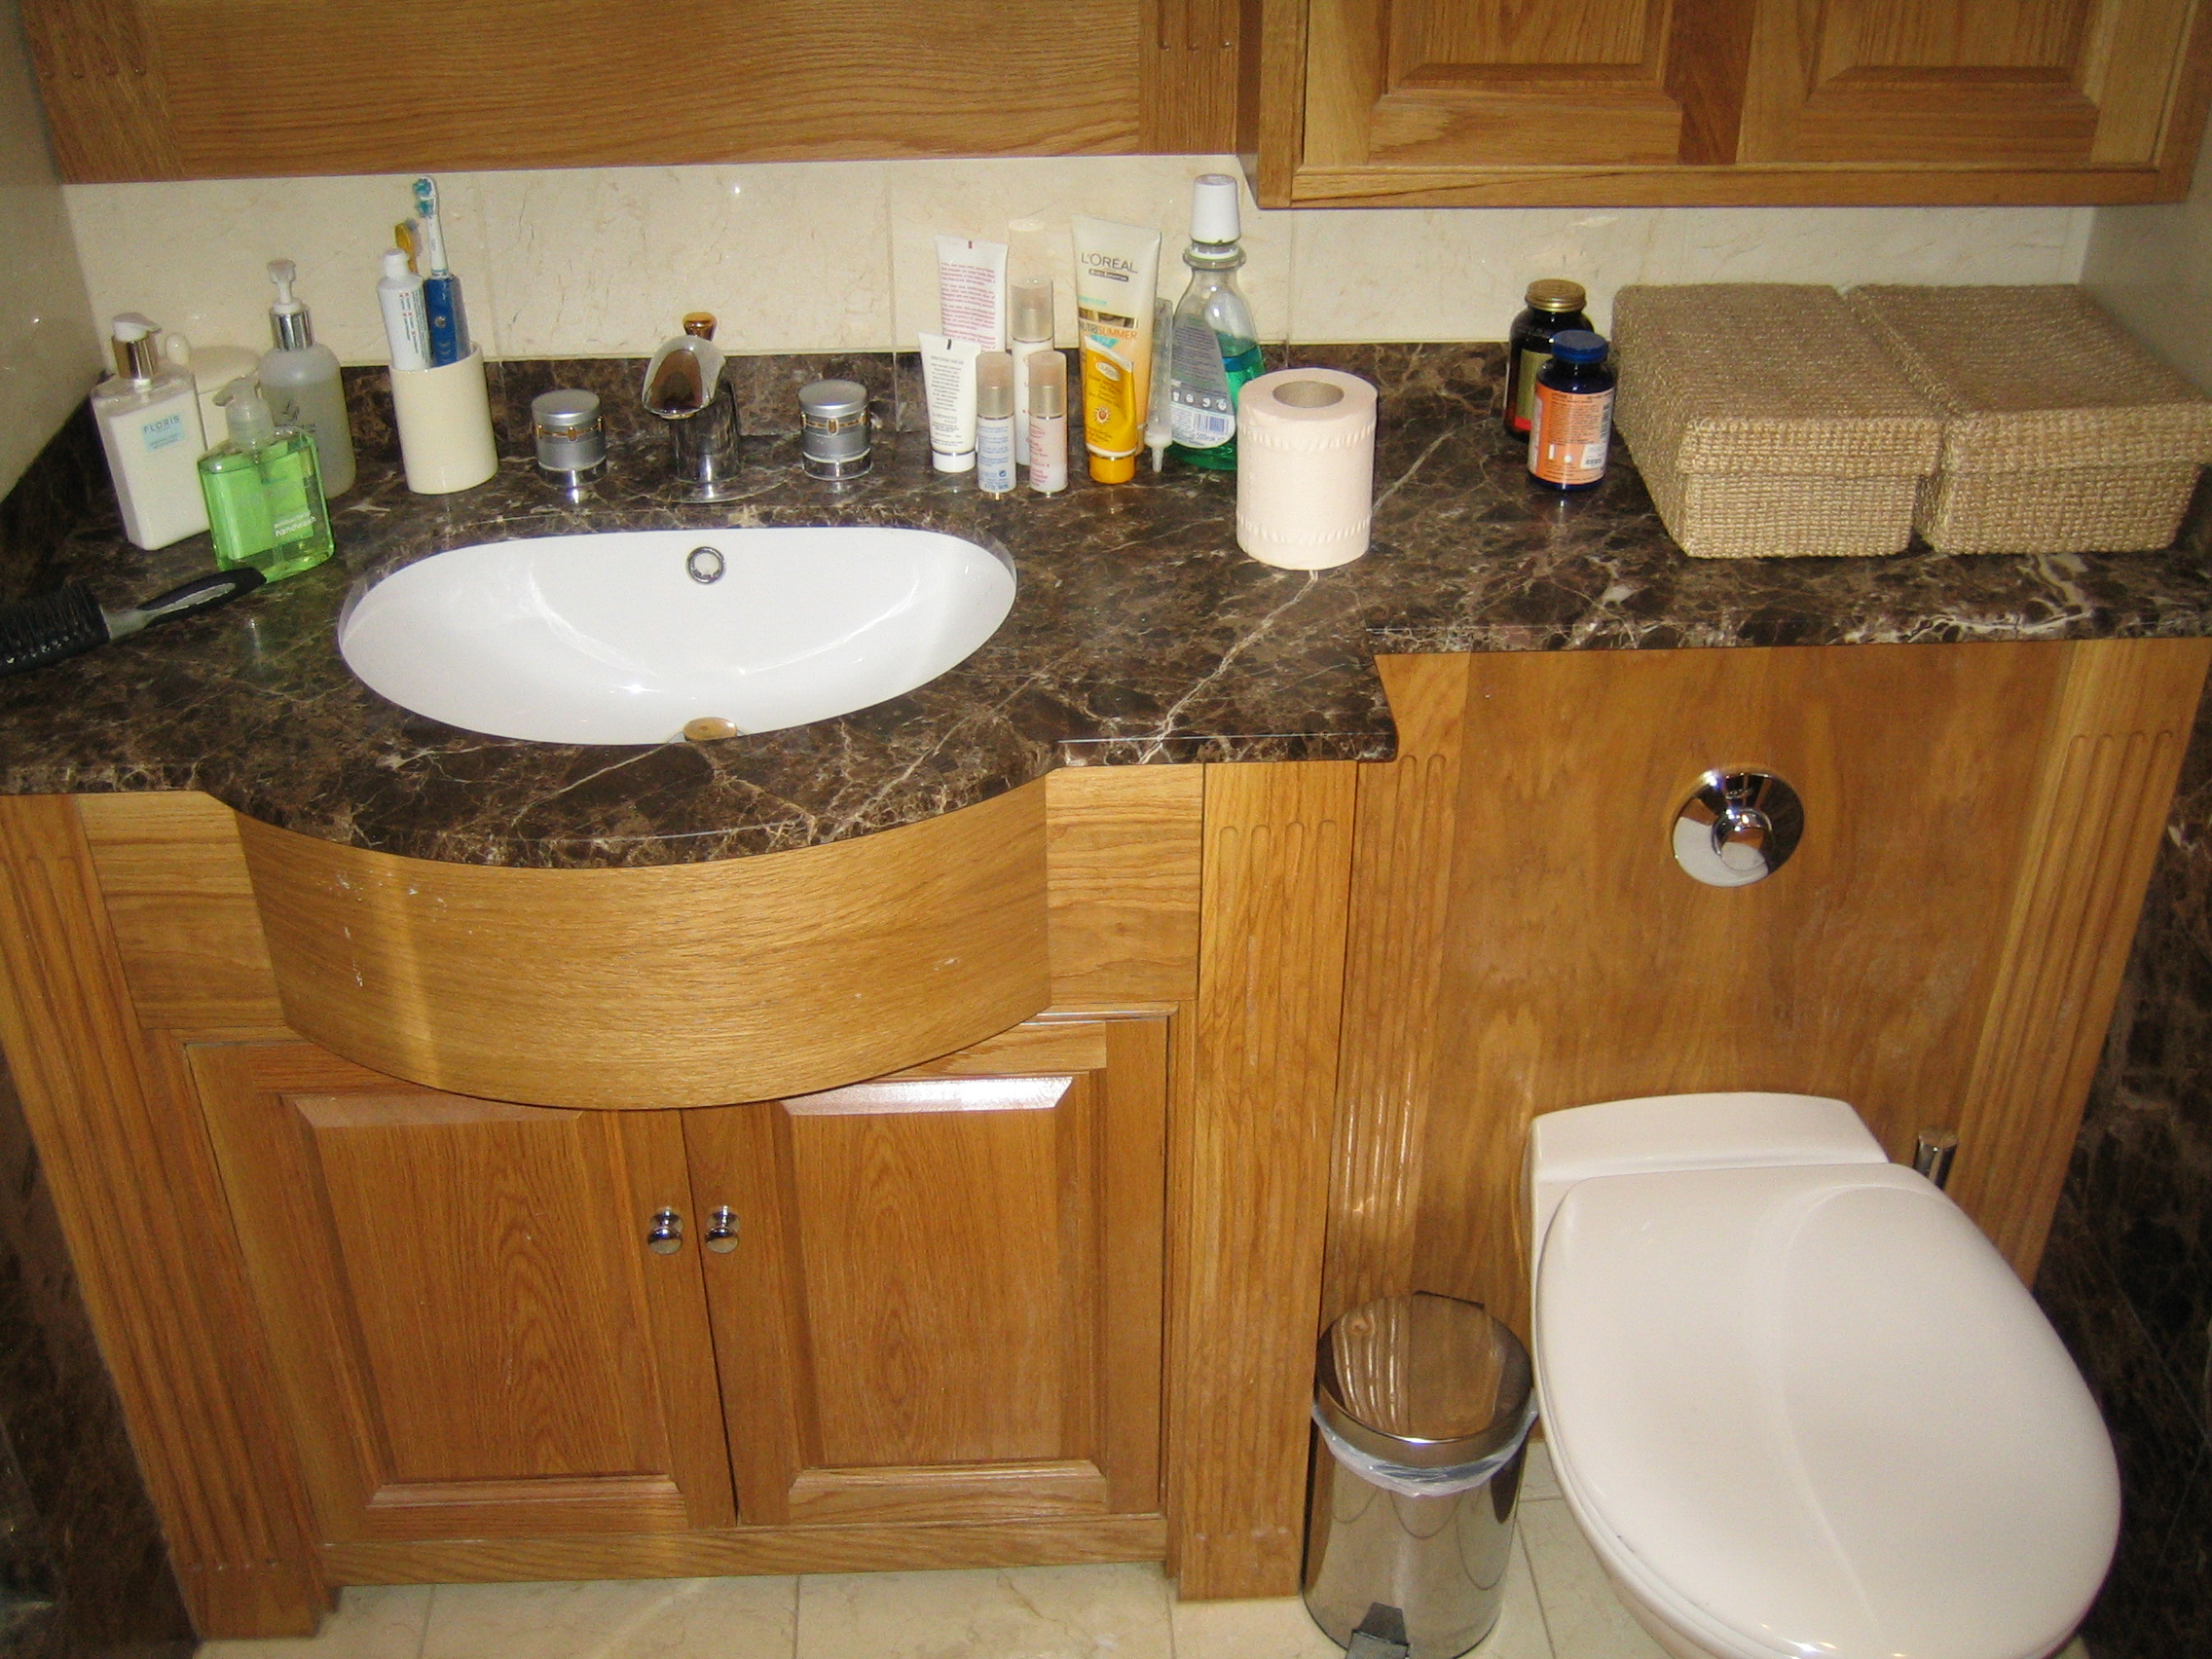 Bathroom cabinets london bathroom cabinets for Bathroom decor london ontario